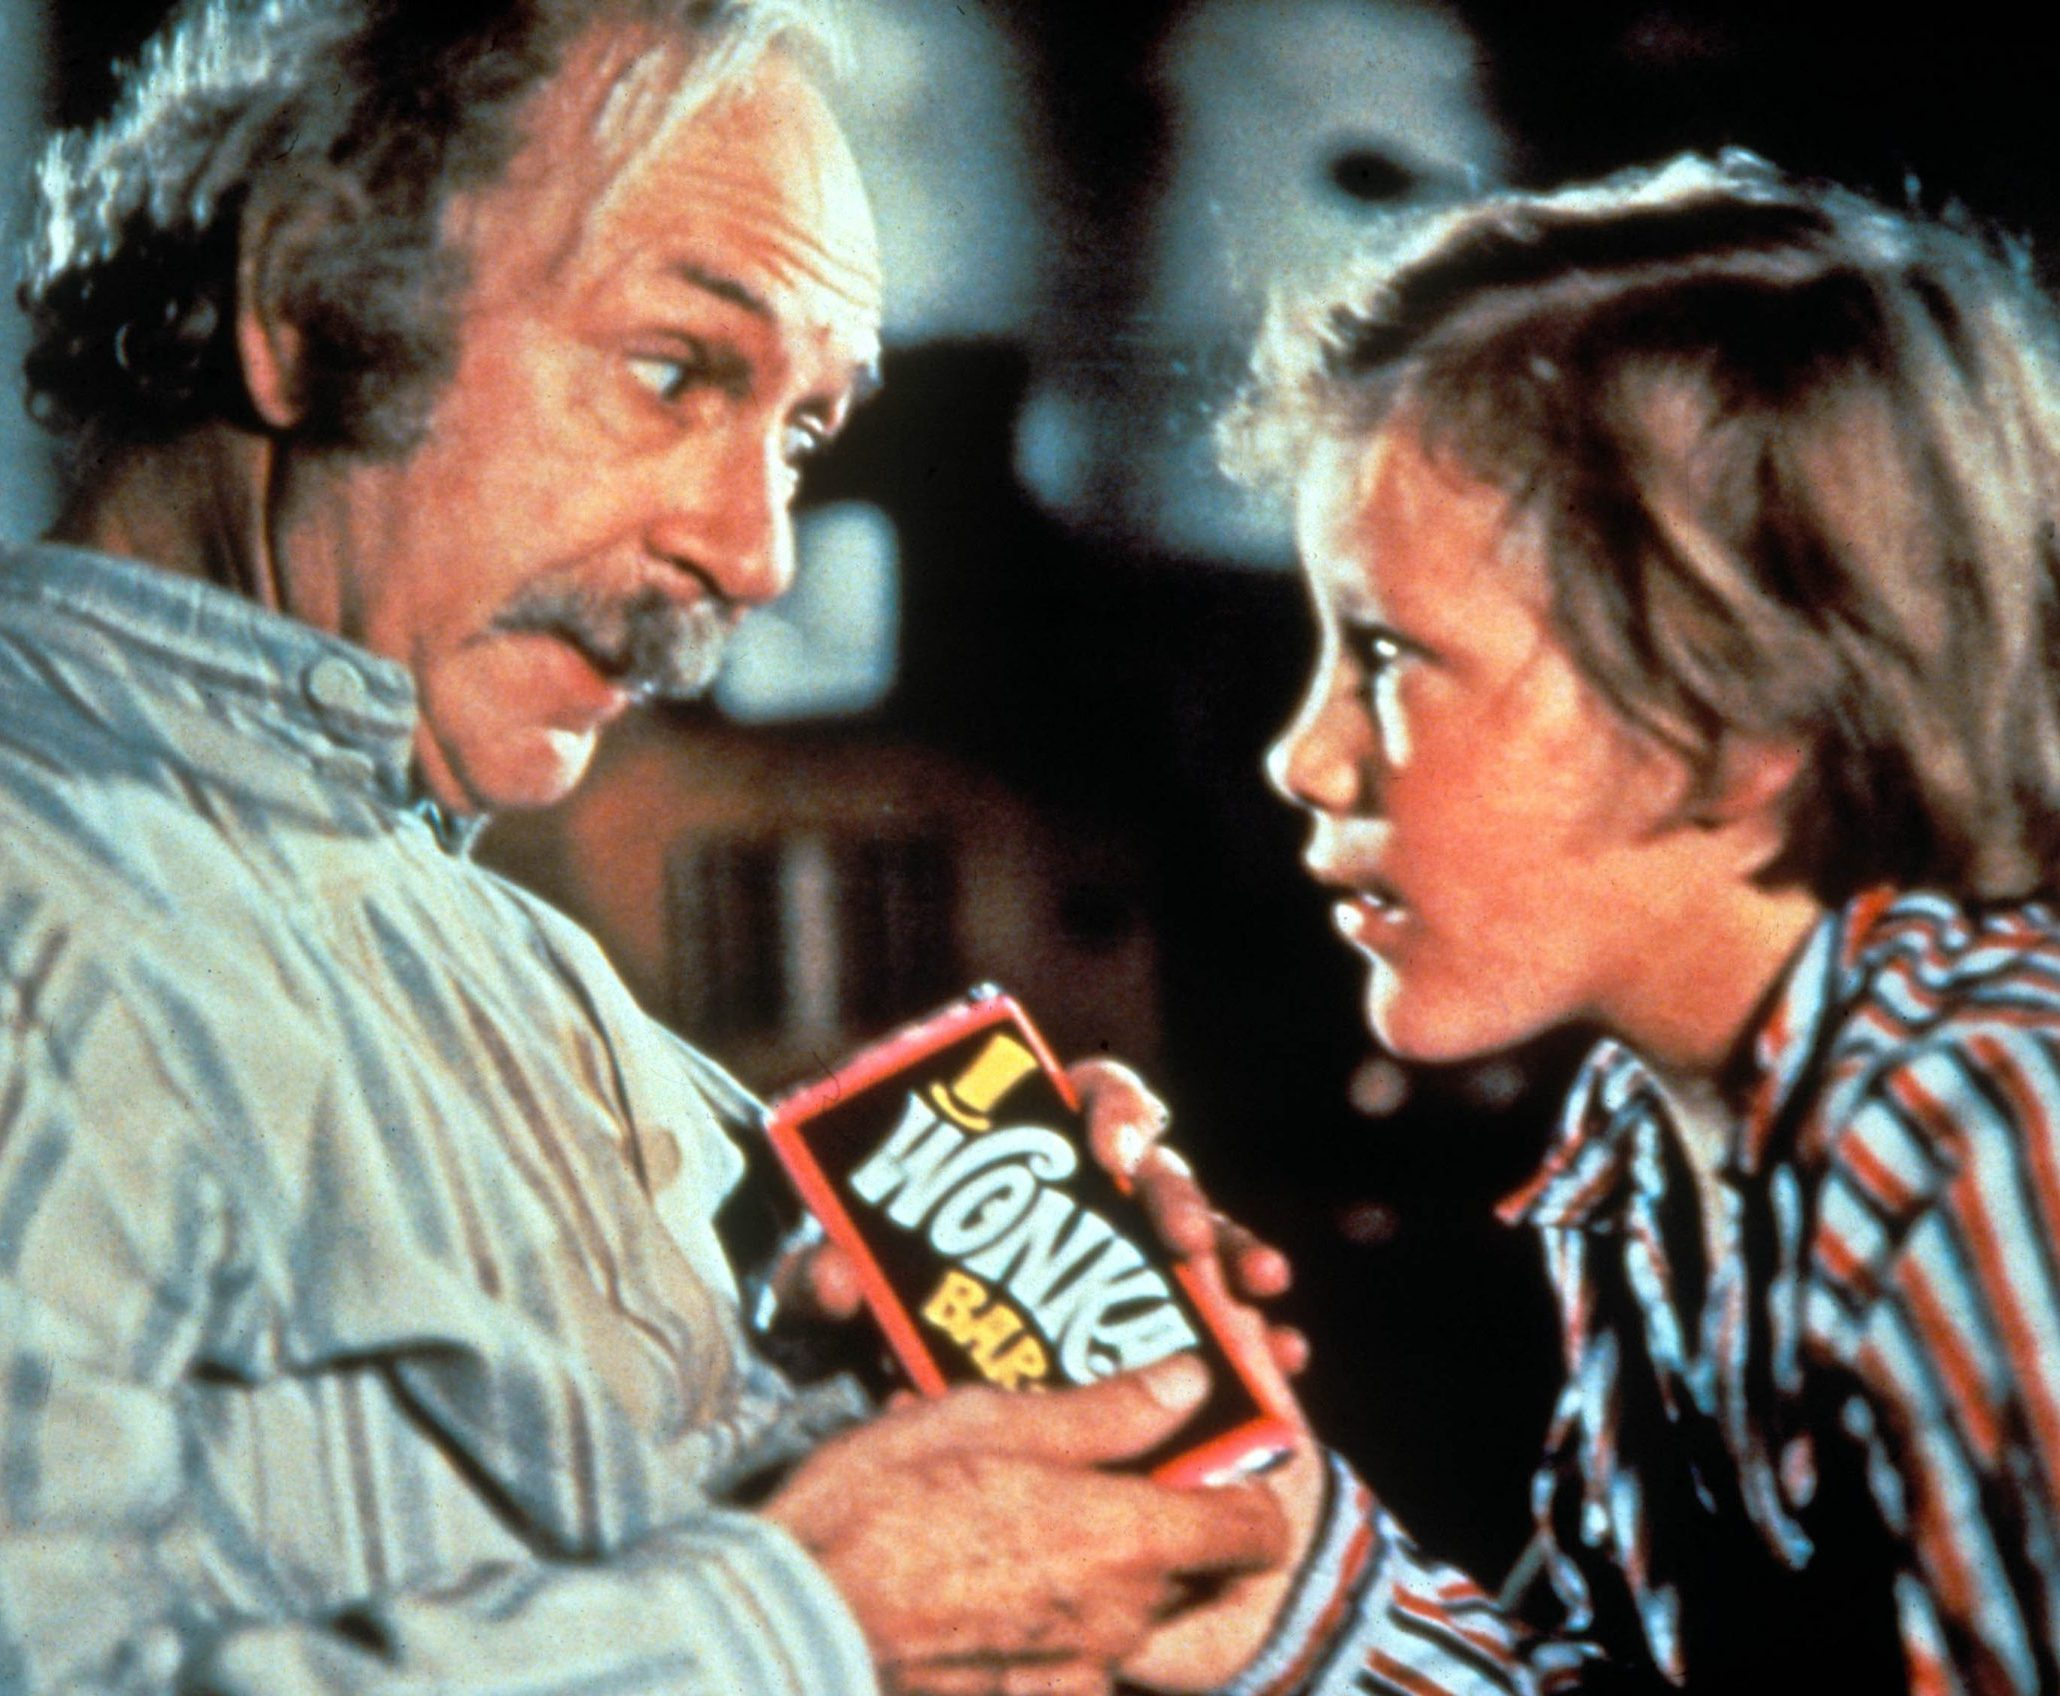 nintchdbpict000248633017 scaled e1622621960997 28 Things You Probably Never Knew About Willy Wonka And The Chocolate Factory